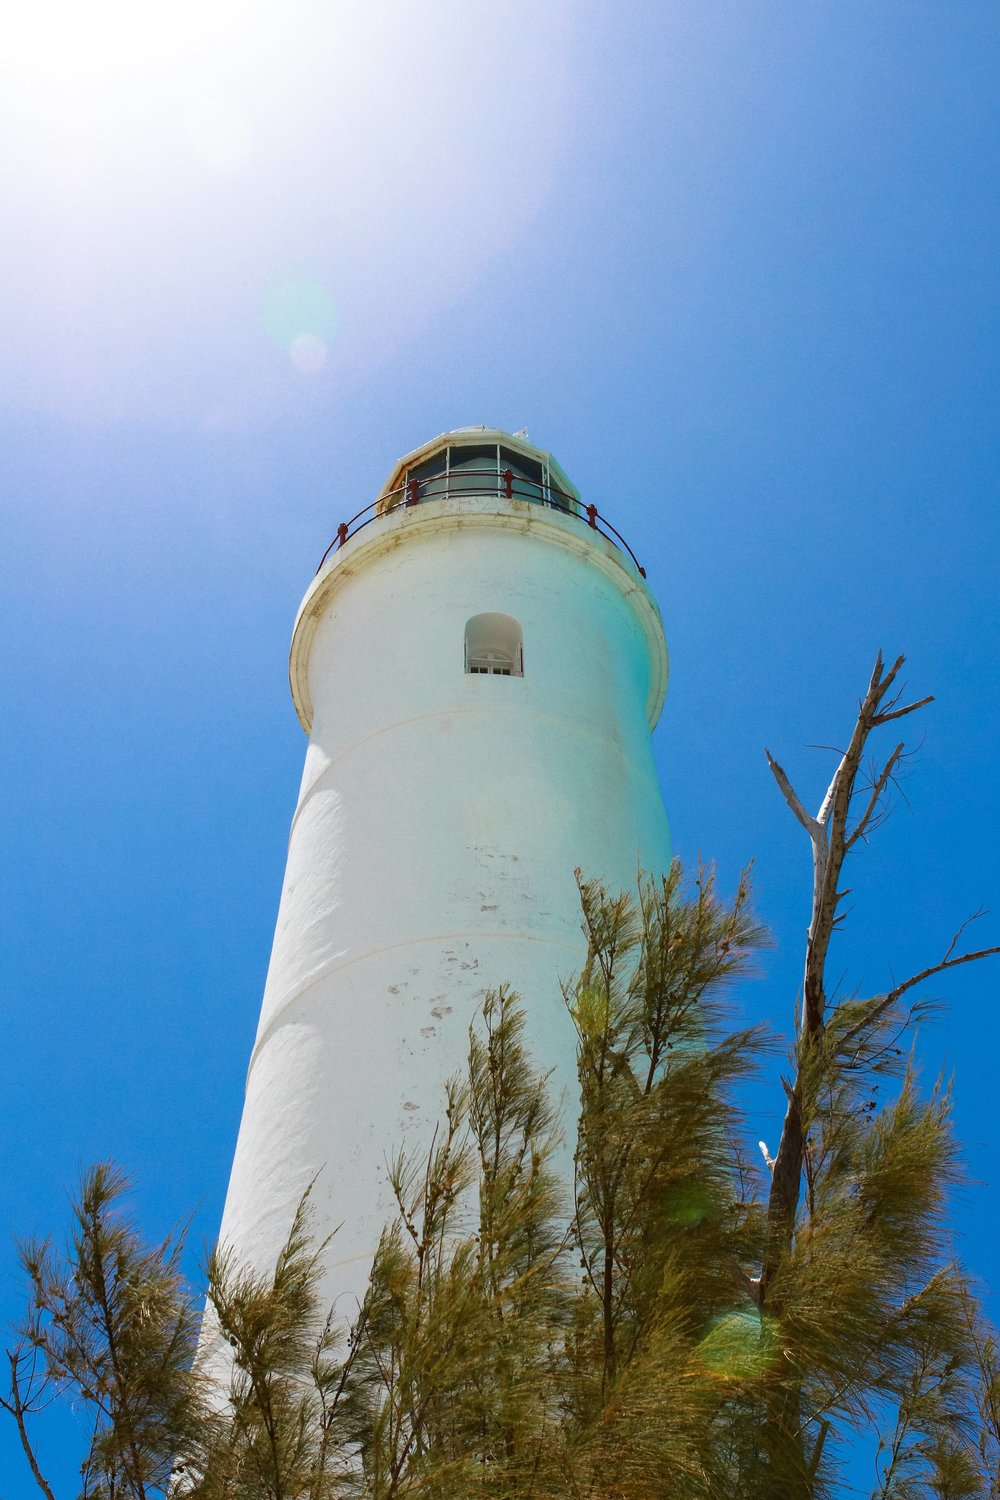 inagualighthouse-2012-dedebrownphotography-001 copy.jpg